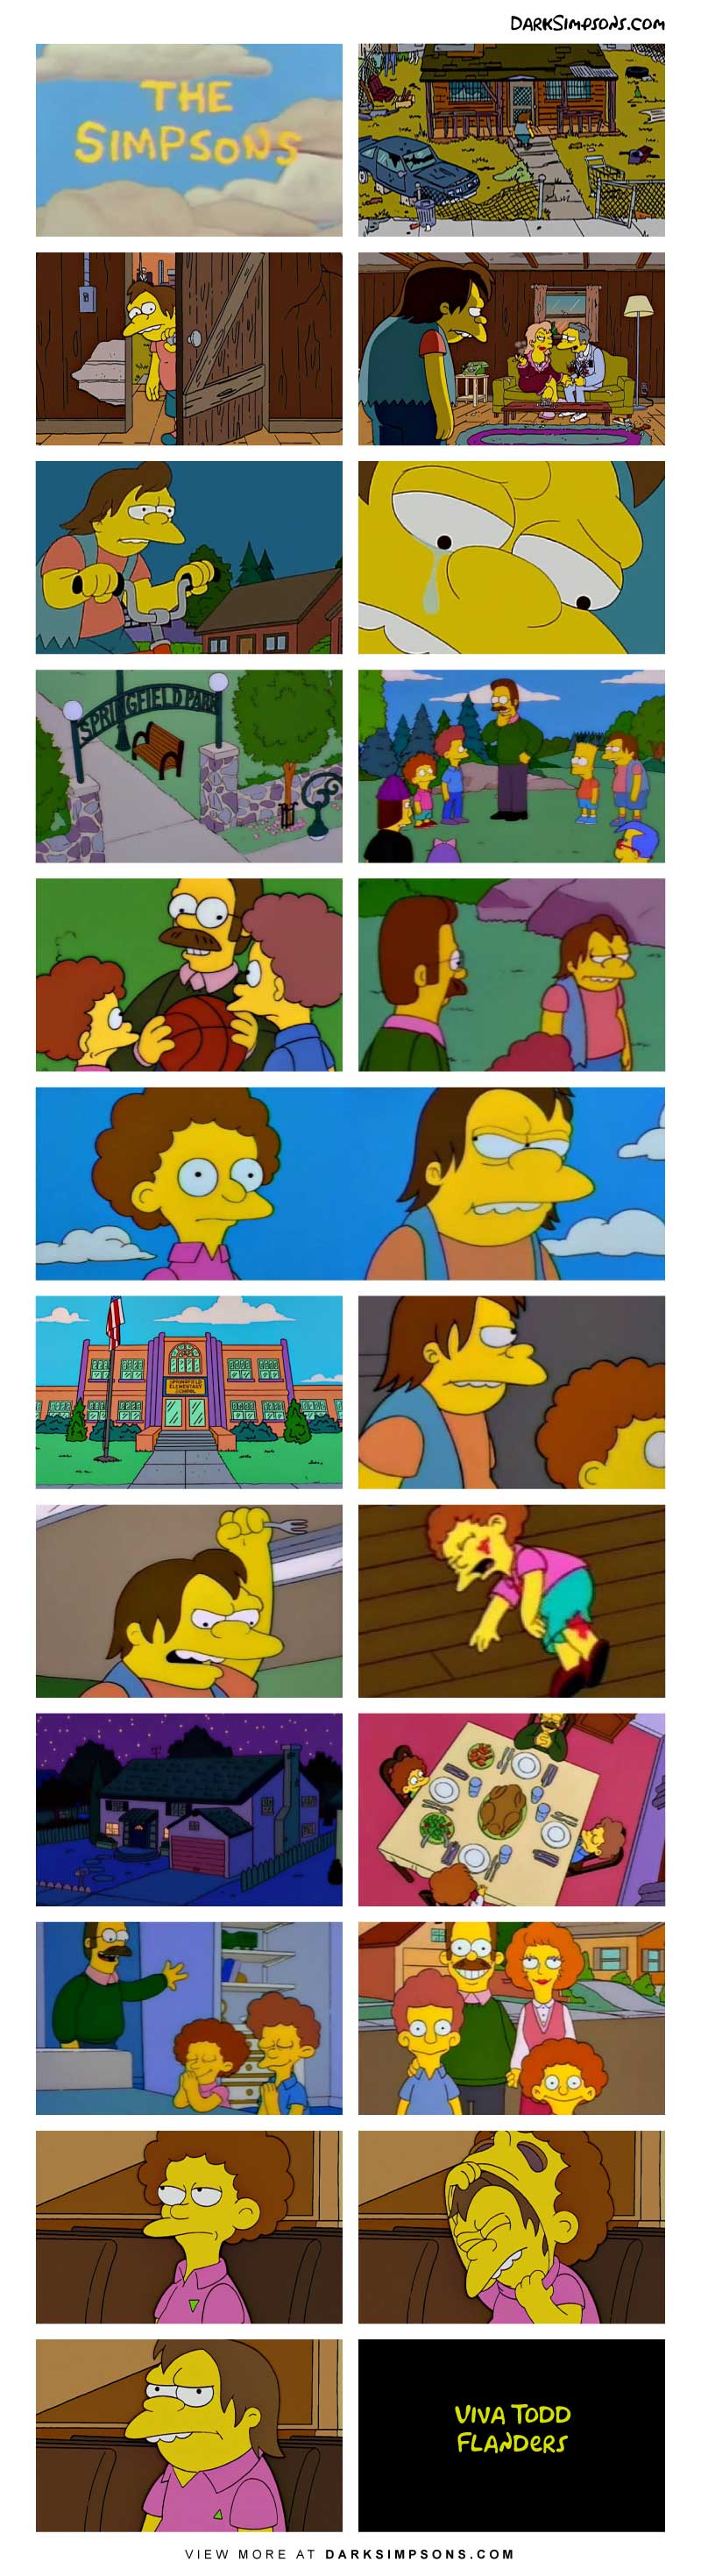 Long live Todd Flanders! Nelson Muntz comes from a broken home, when he sees the happy Flanders family, he gets jealous. Todd Flanders doesn't deserve such a cool family, so Nelson hatches an evil plan.